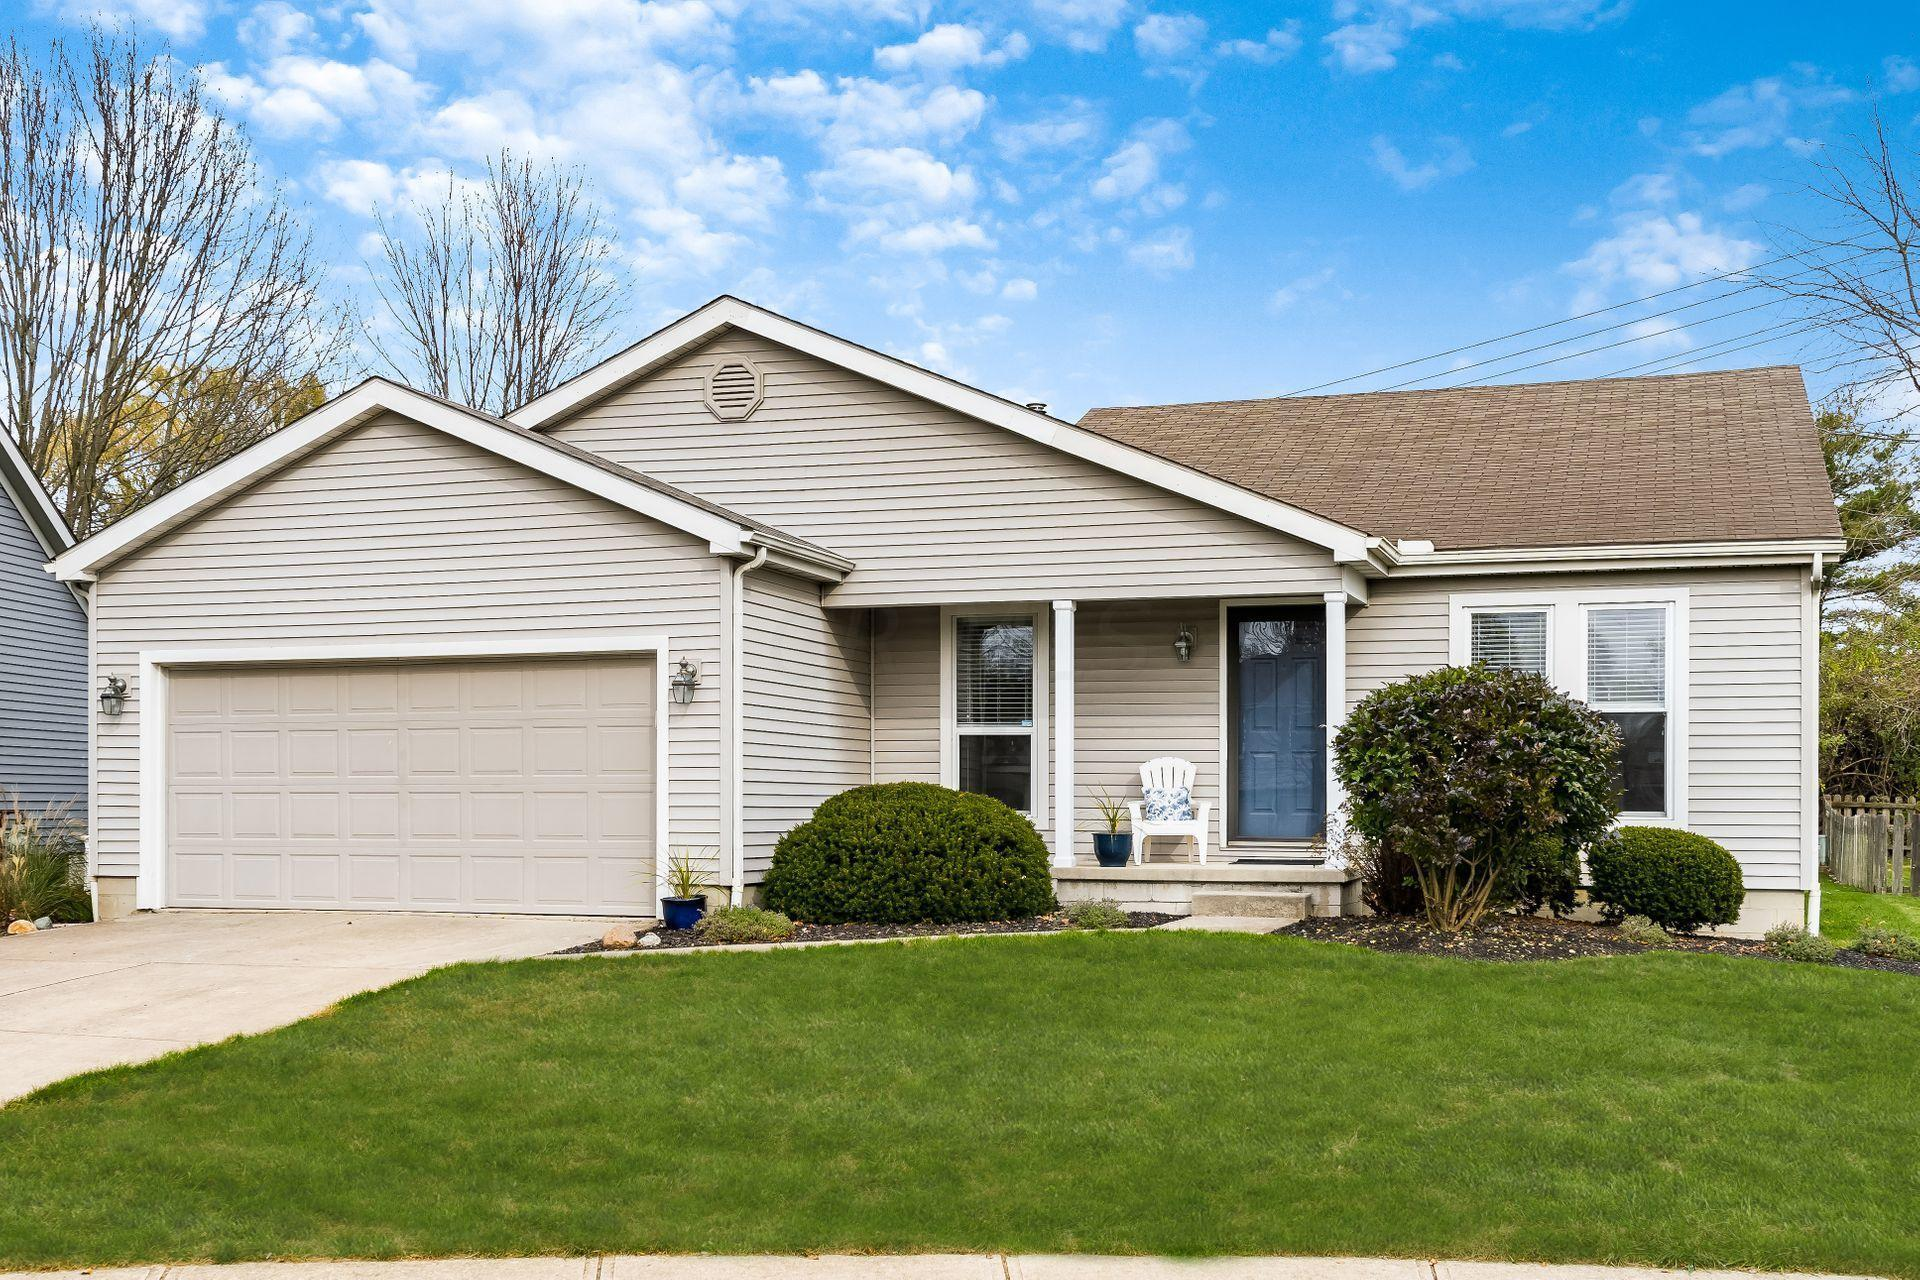 1570 Grayling Court, Columbus, Ohio 43235, 3 Bedrooms Bedrooms, ,2 BathroomsBathrooms,Residential,For Sale,Grayling,220040427